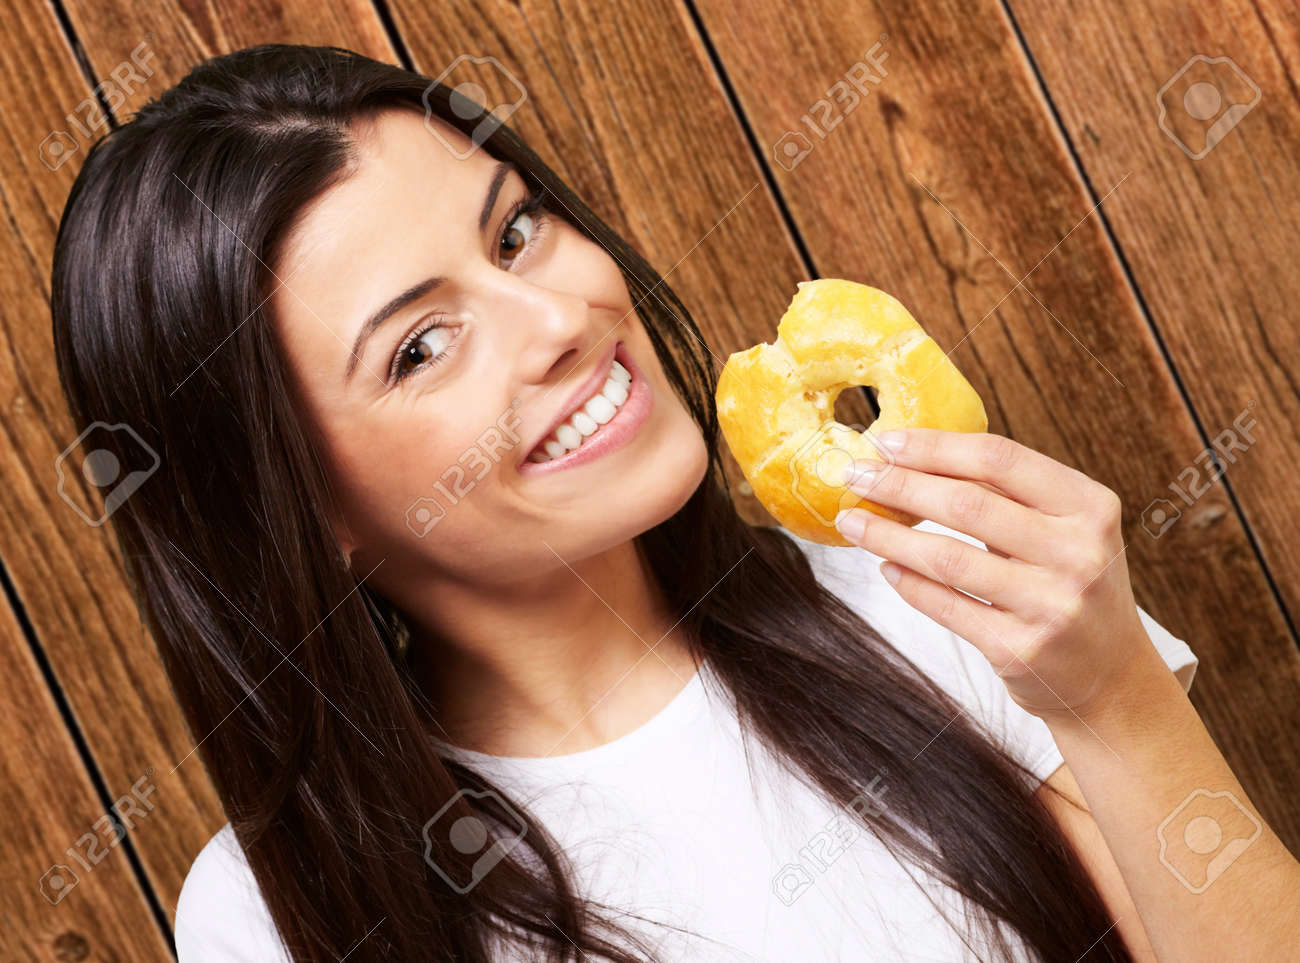 portrait of young woman eating a donut against a wooden wall Stock Photo - 13280352